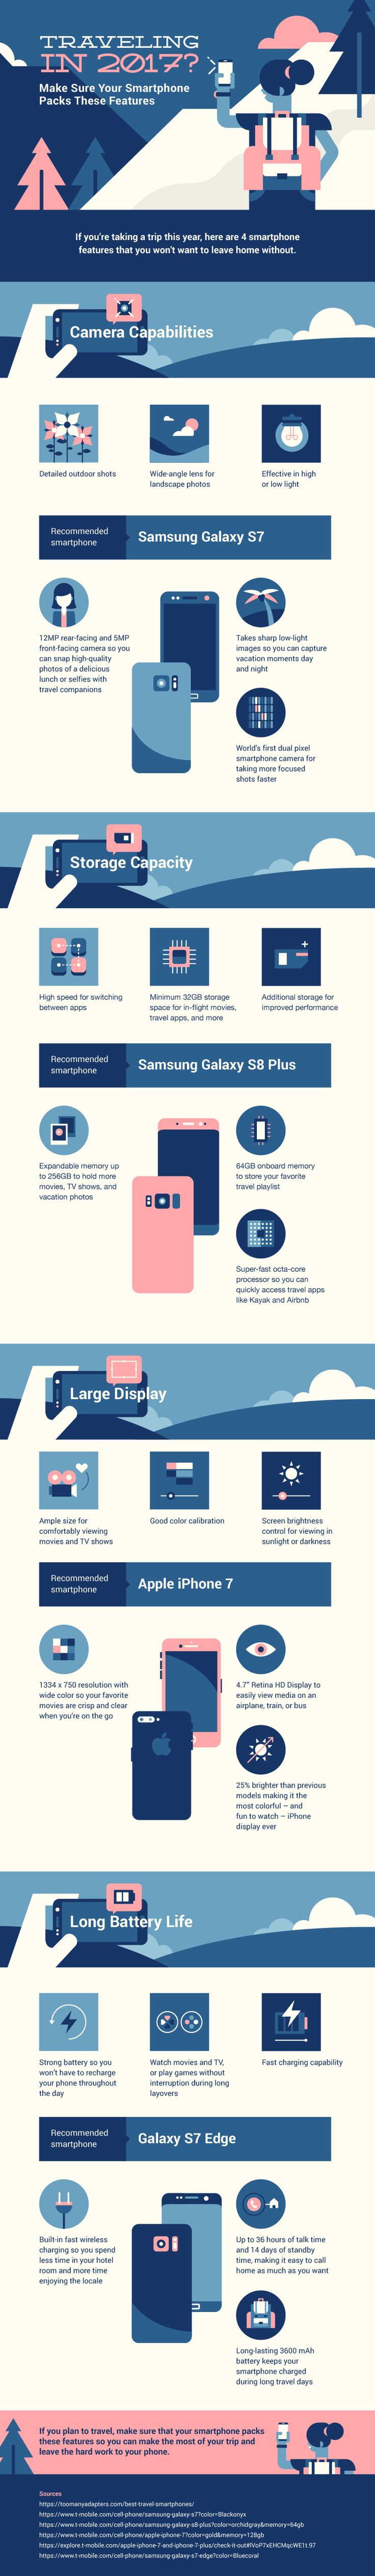 4 Smartphone Features To Have For Travel This Year - Infographic